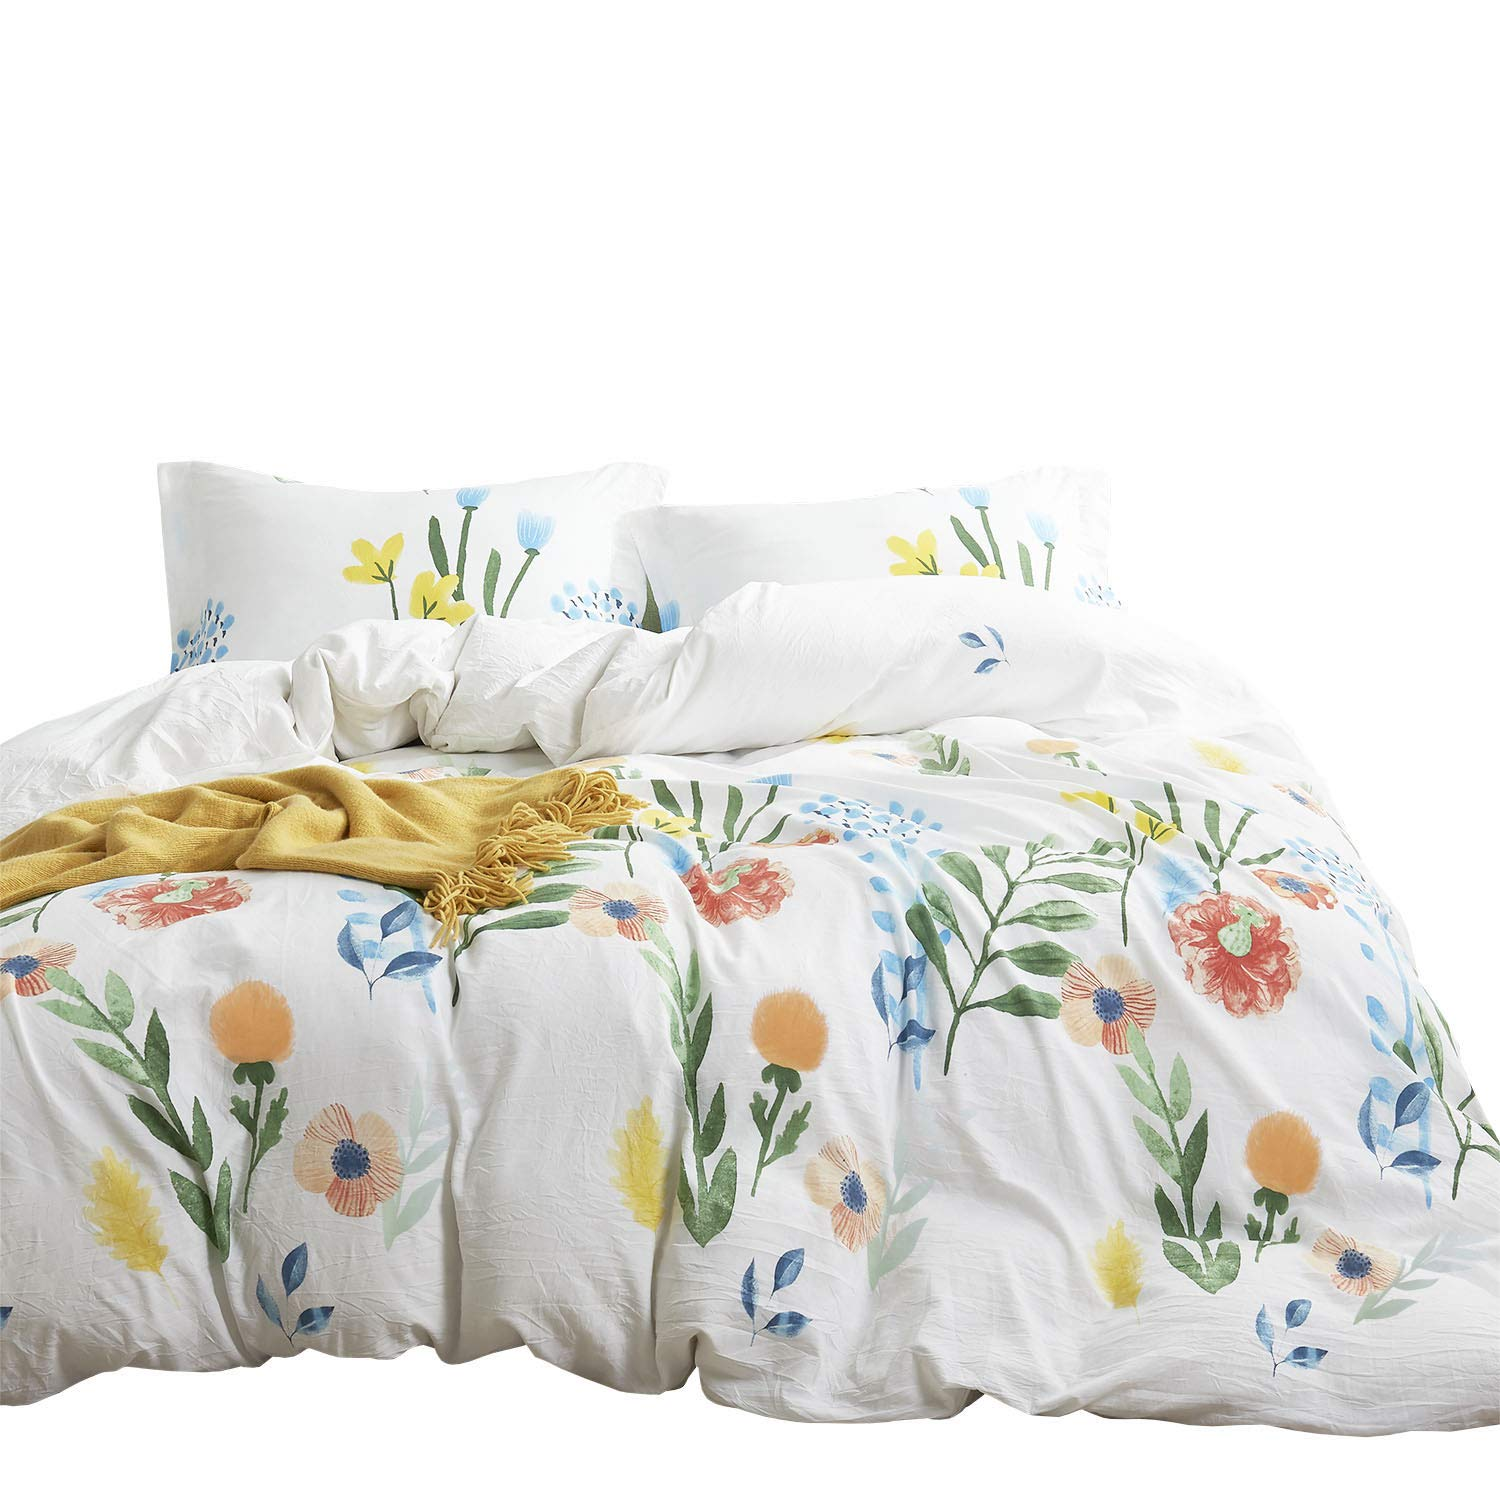 Wake In Cloud - Floral Duvet Cover Set, 100% Cotton Bedding, Colorful Watercolor Flowers Leaves Painting Printed on White, Zipper Closure (3pcs, Queen Size)